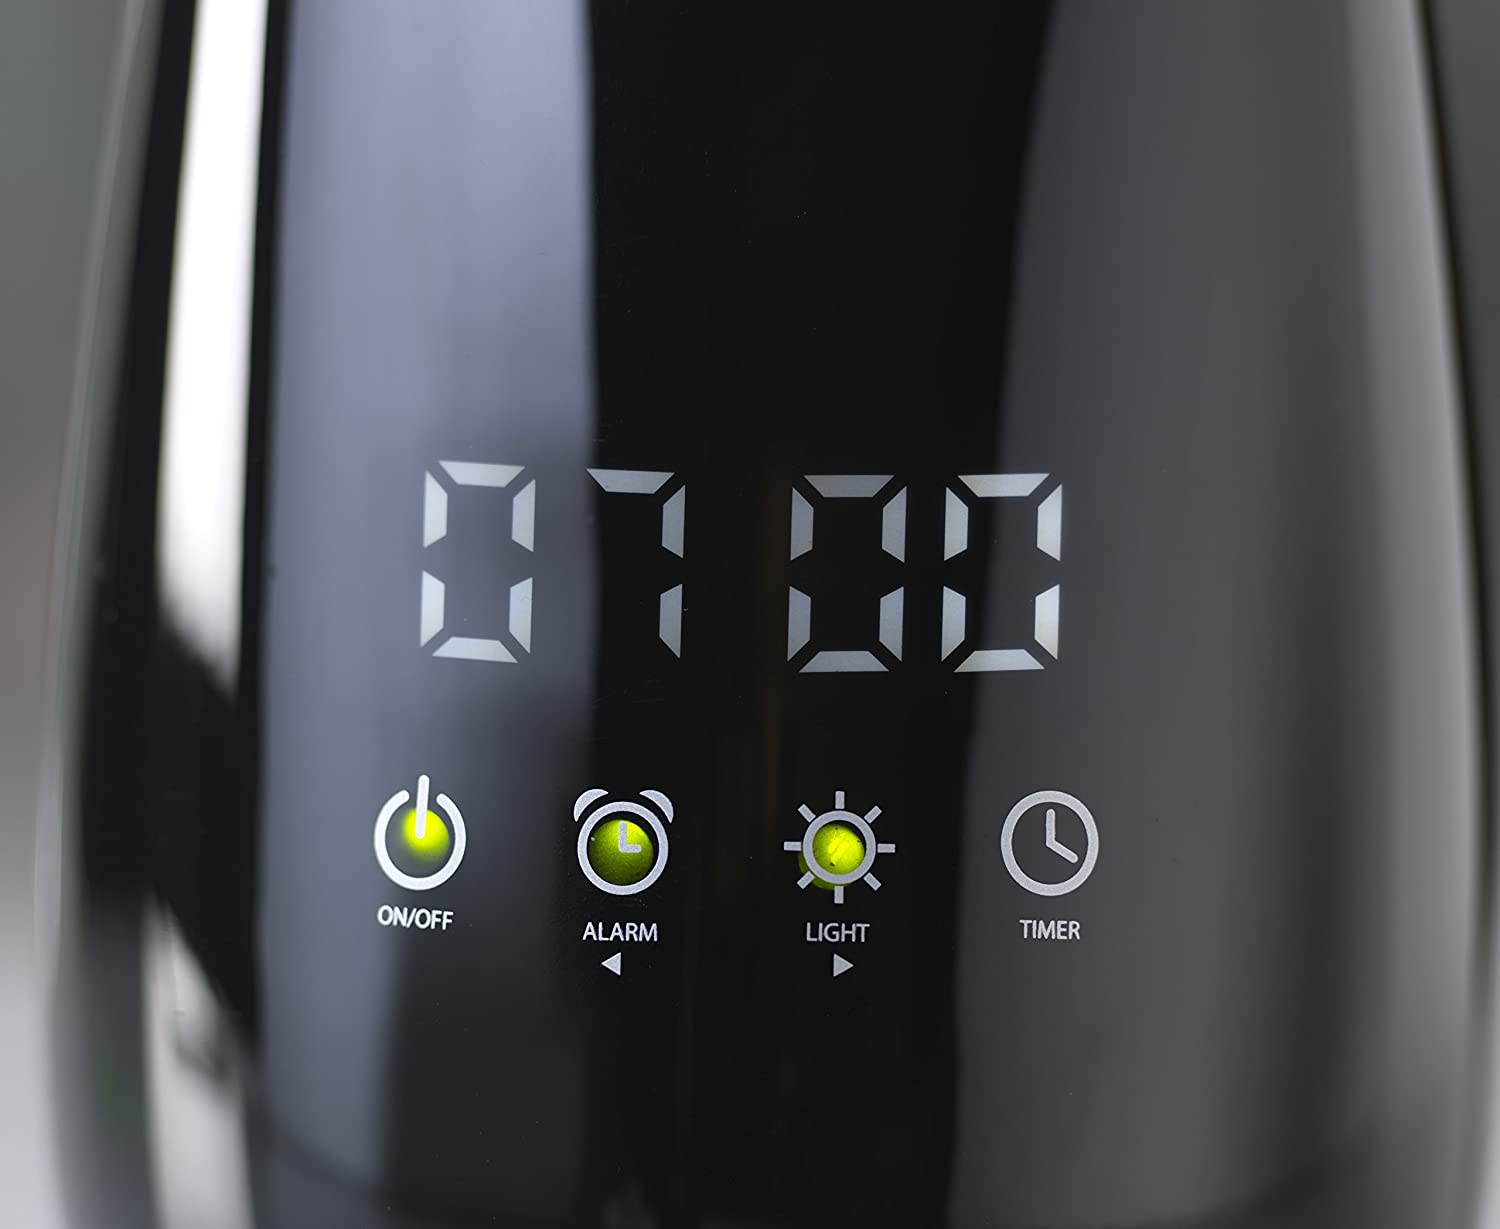 Dimplex 100ml Electronic Aroma Humidifier & Alarm Clock DXAD100